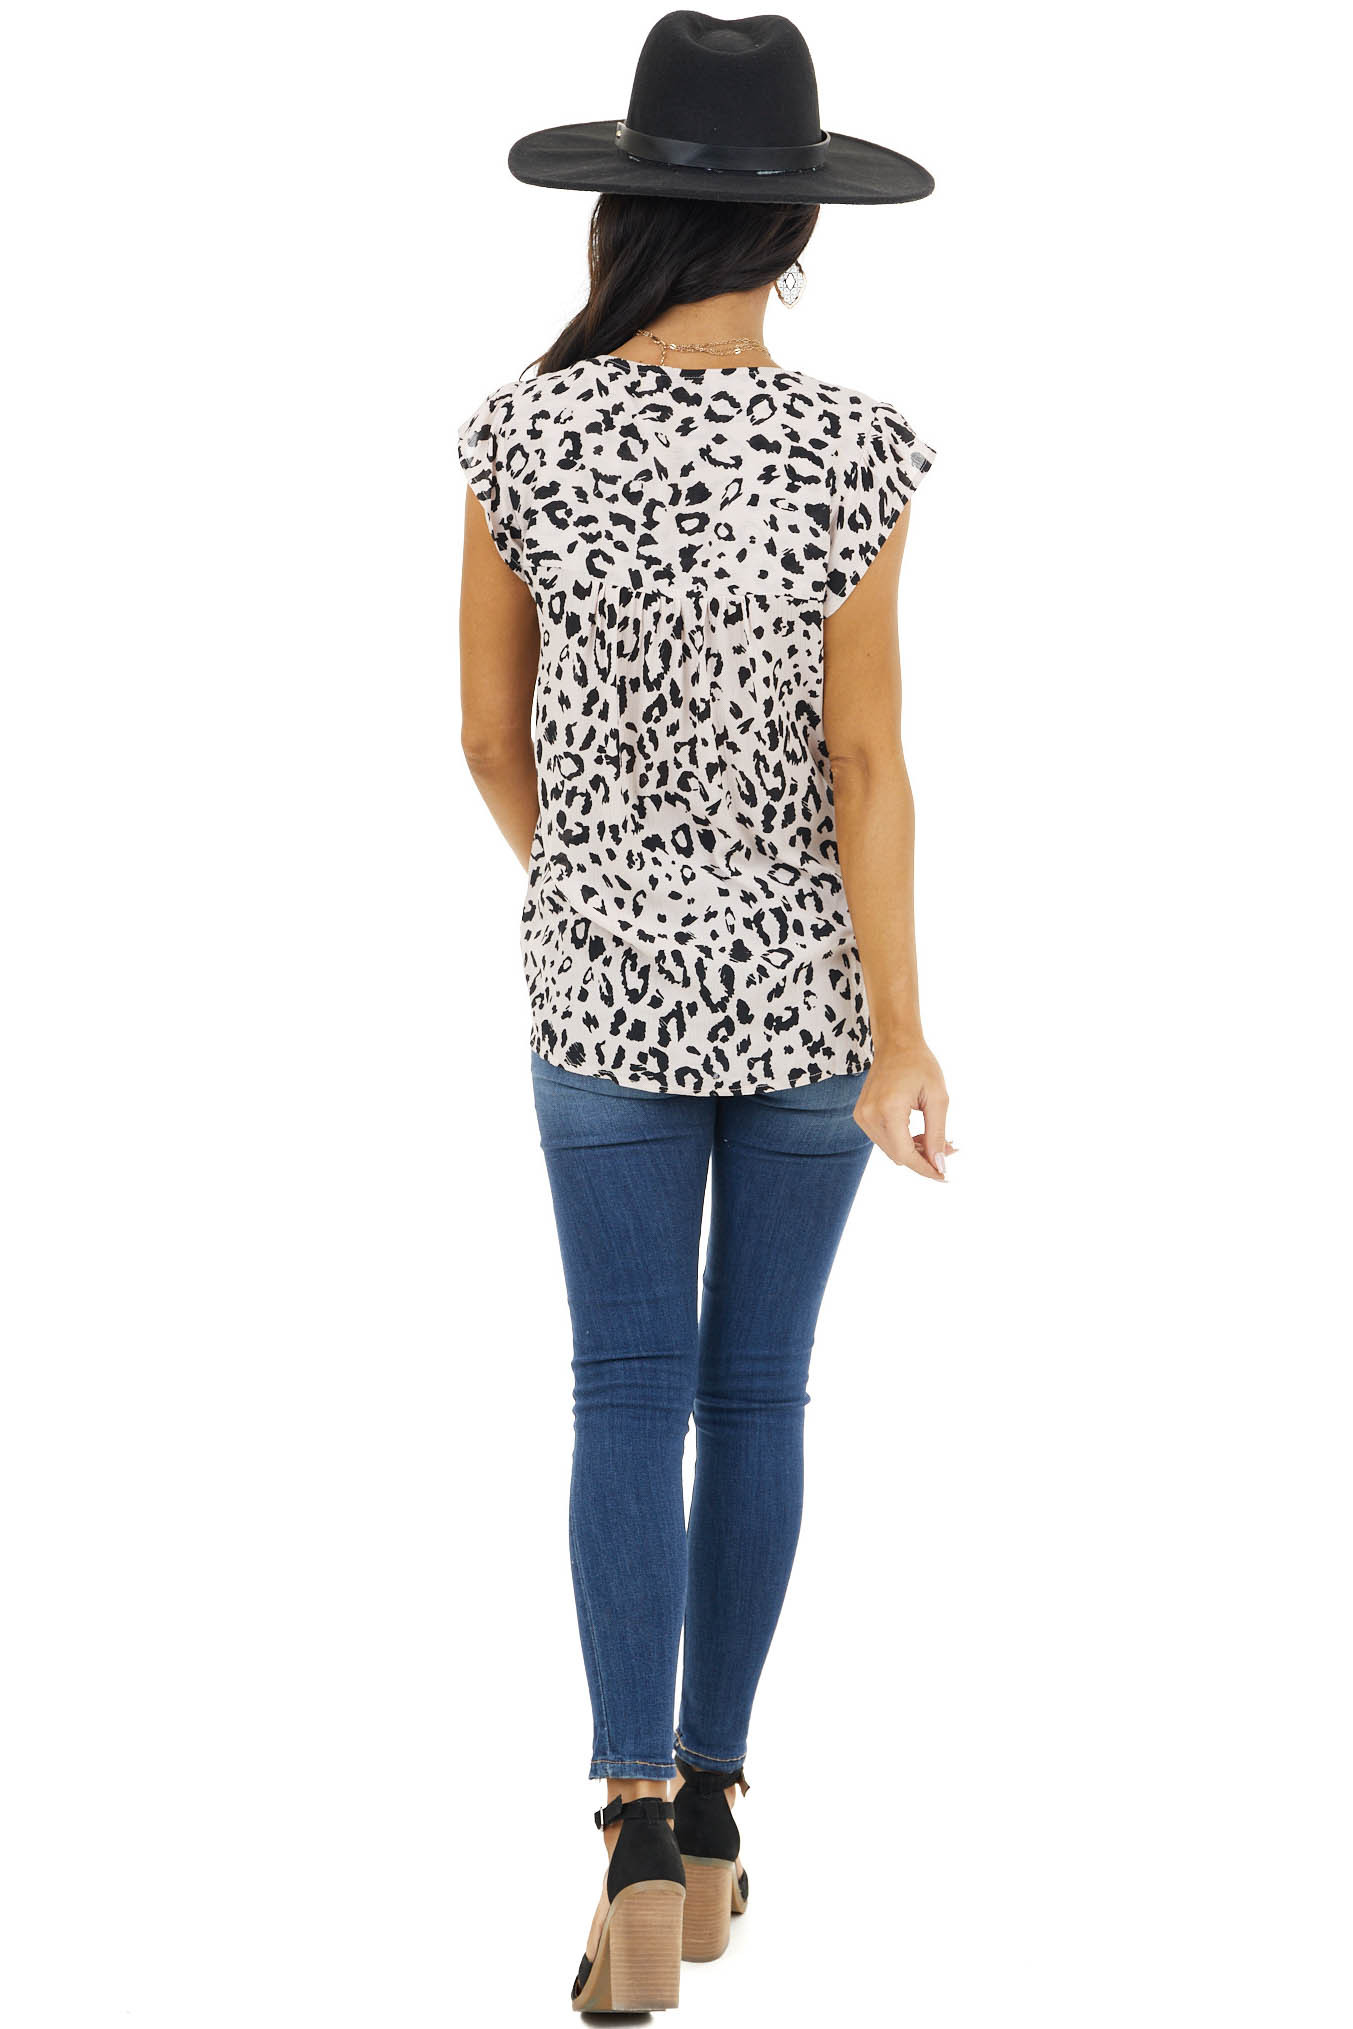 Desert Sand Leopard Print Woven Top with Embroidered Details